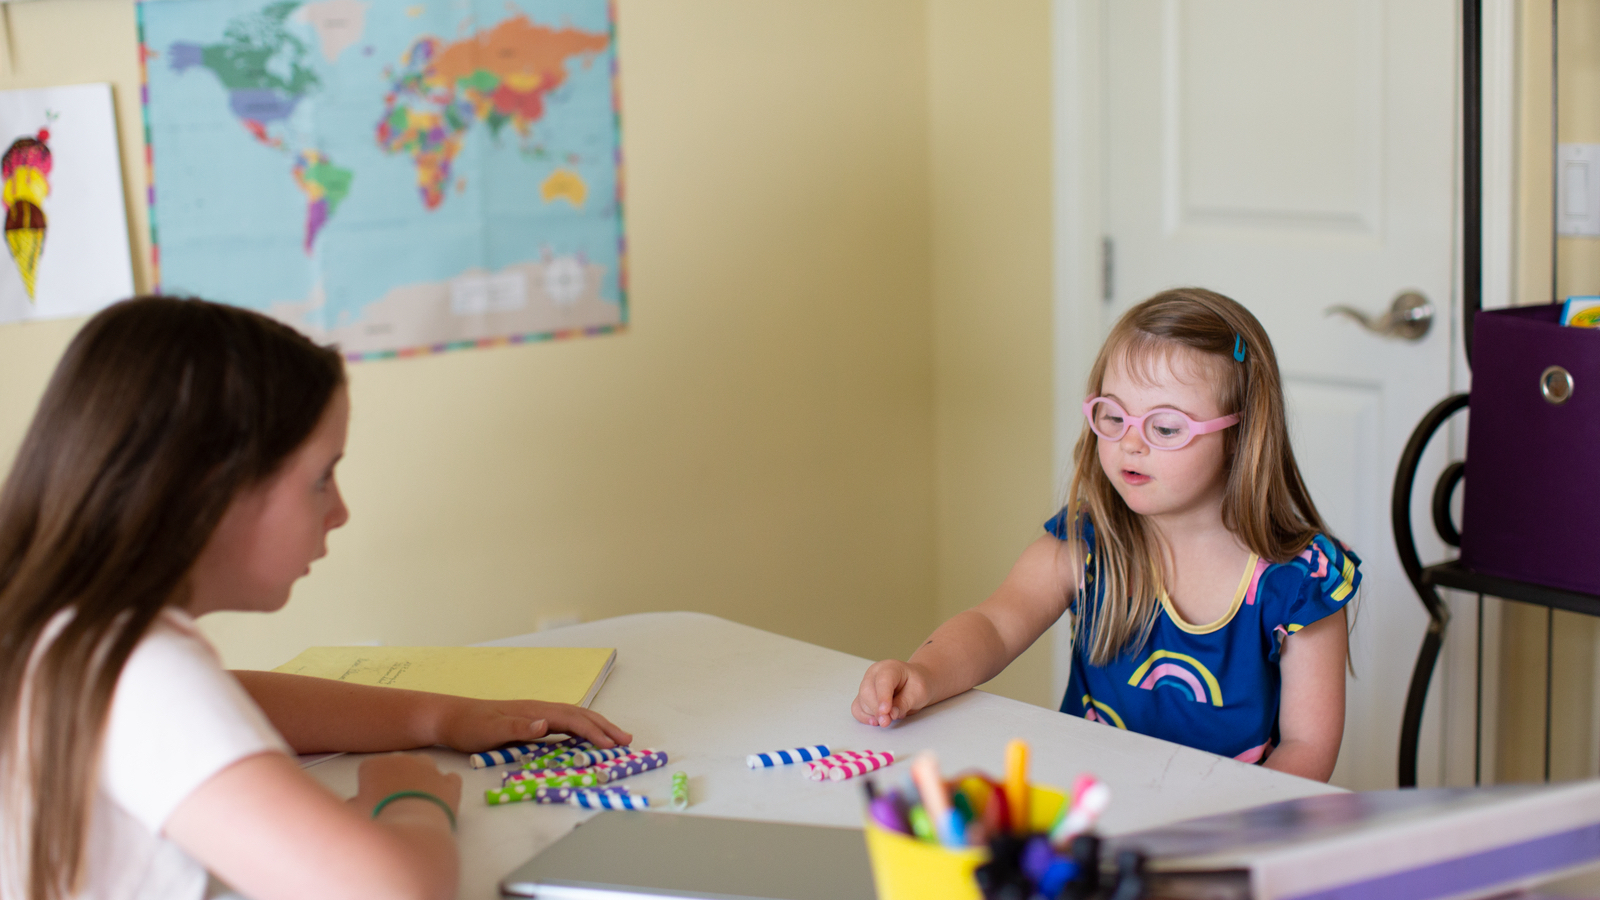 Steps to Improve Outcomes for Students with Disabilities